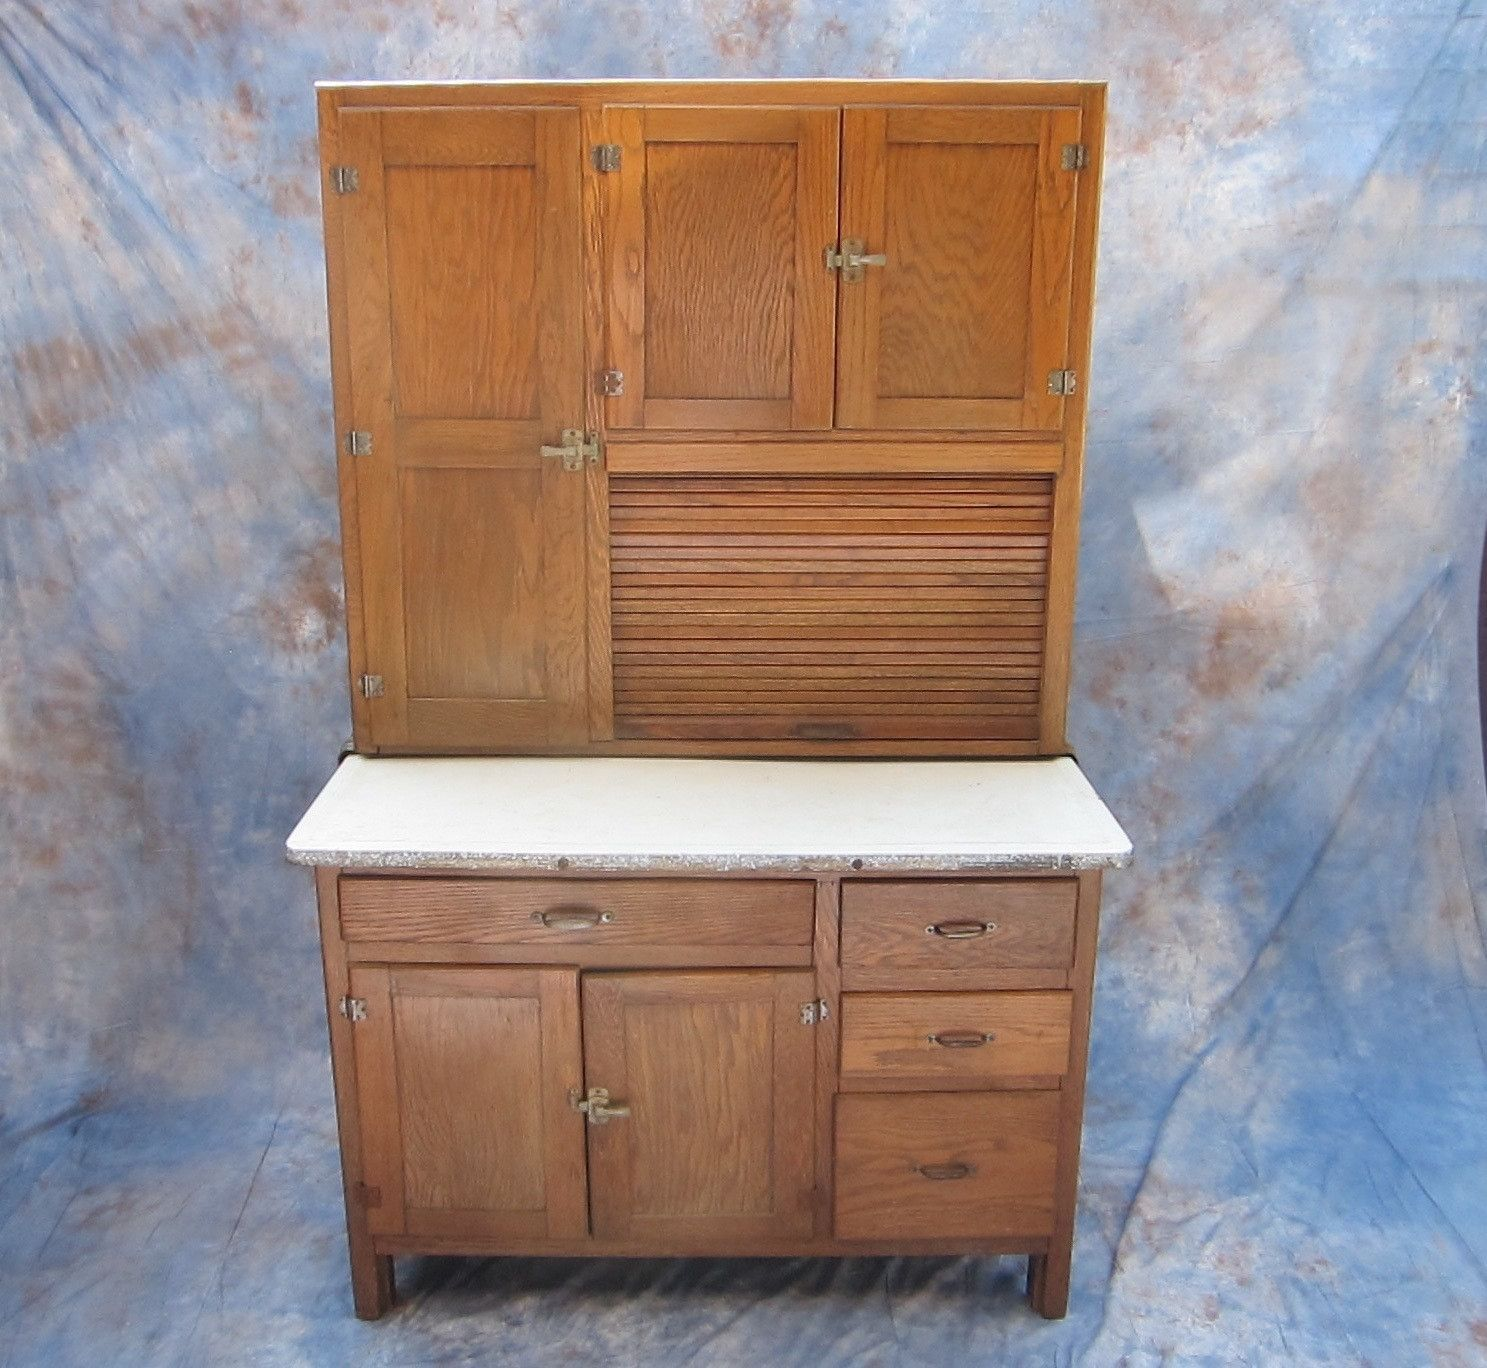 Wilson Kitchen Cabinet Hoosier Ikea Tables And Chairs Antique Buffet